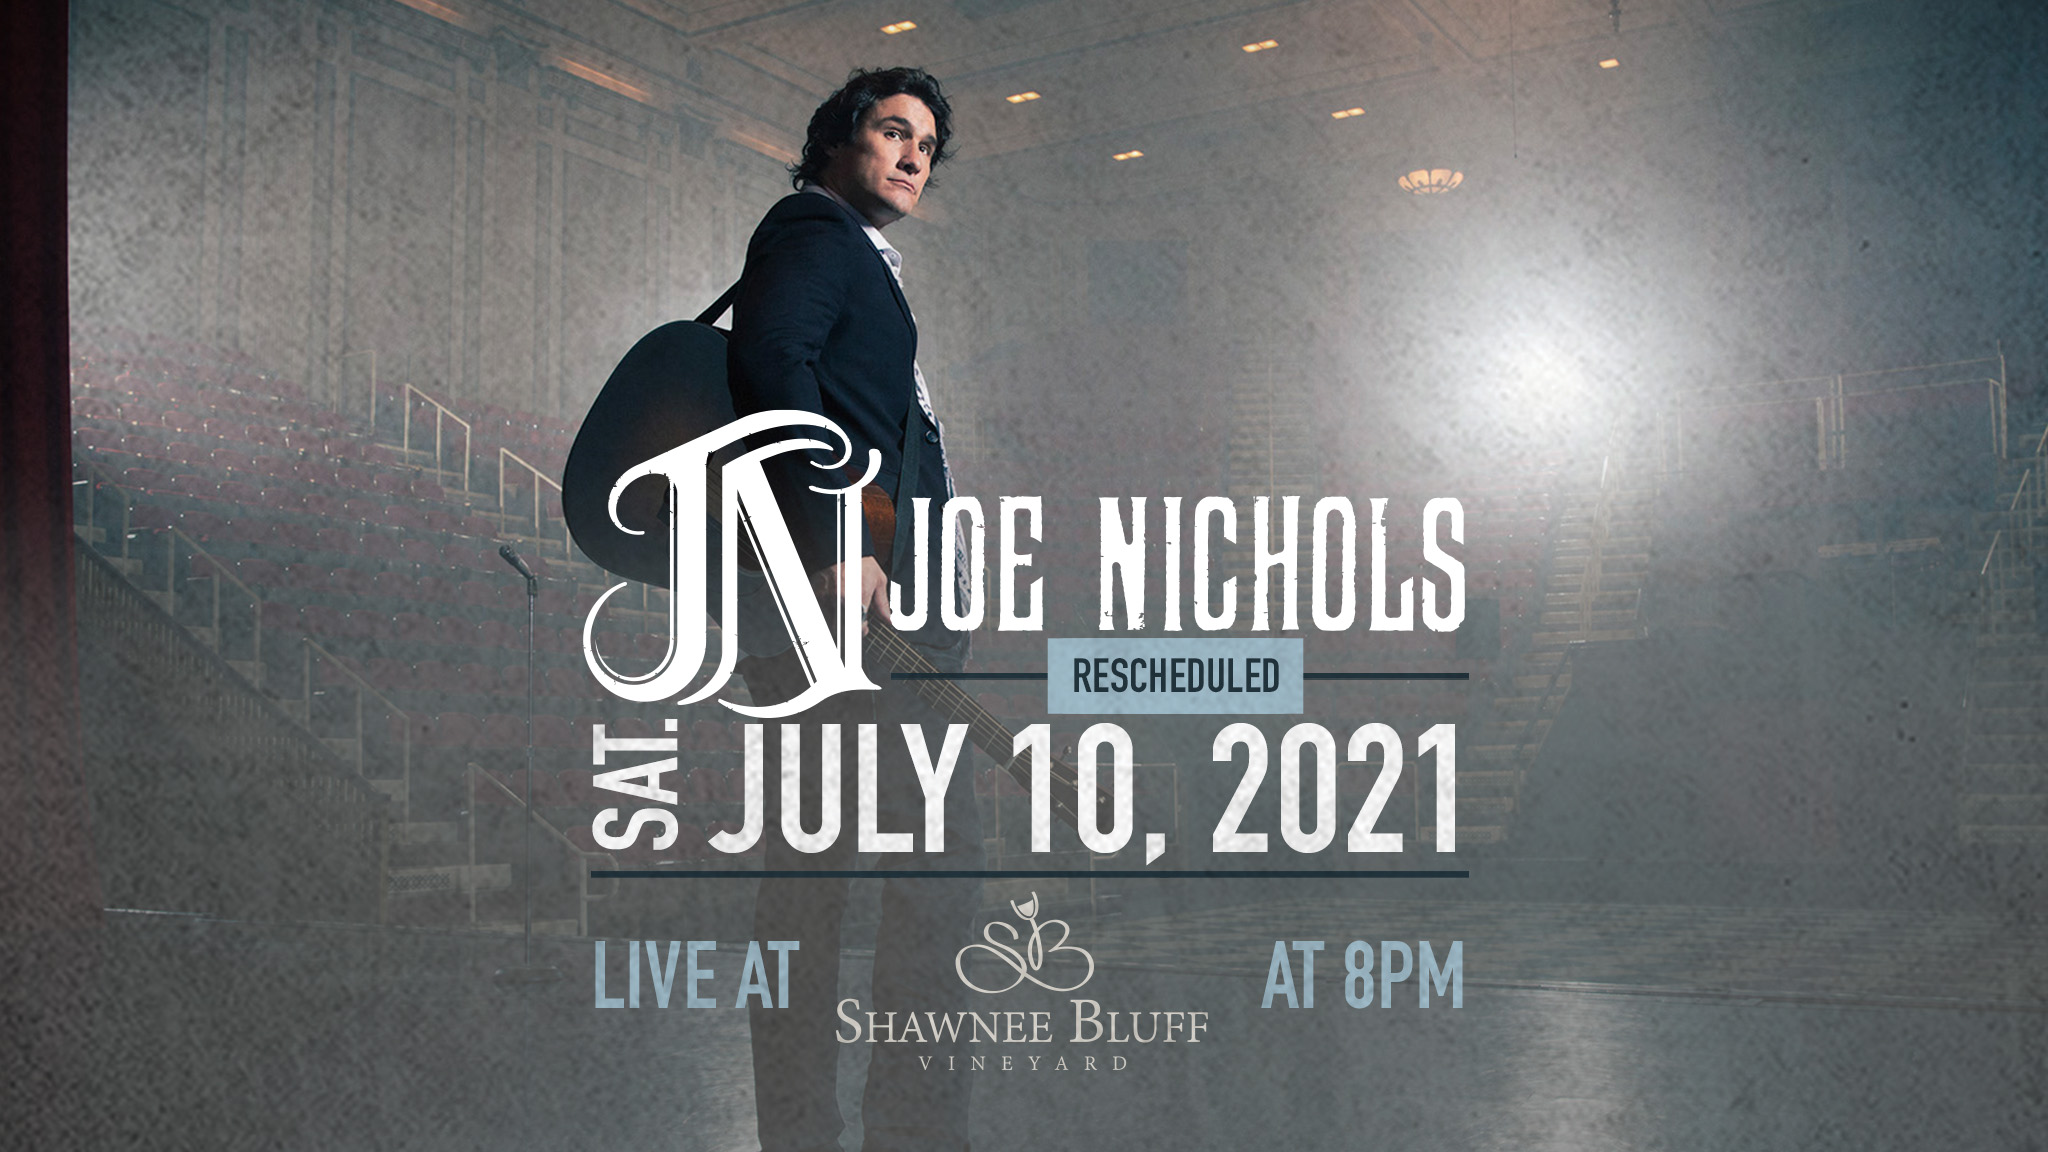 Tickets for Joe Nichols in Eldon from ShowClix